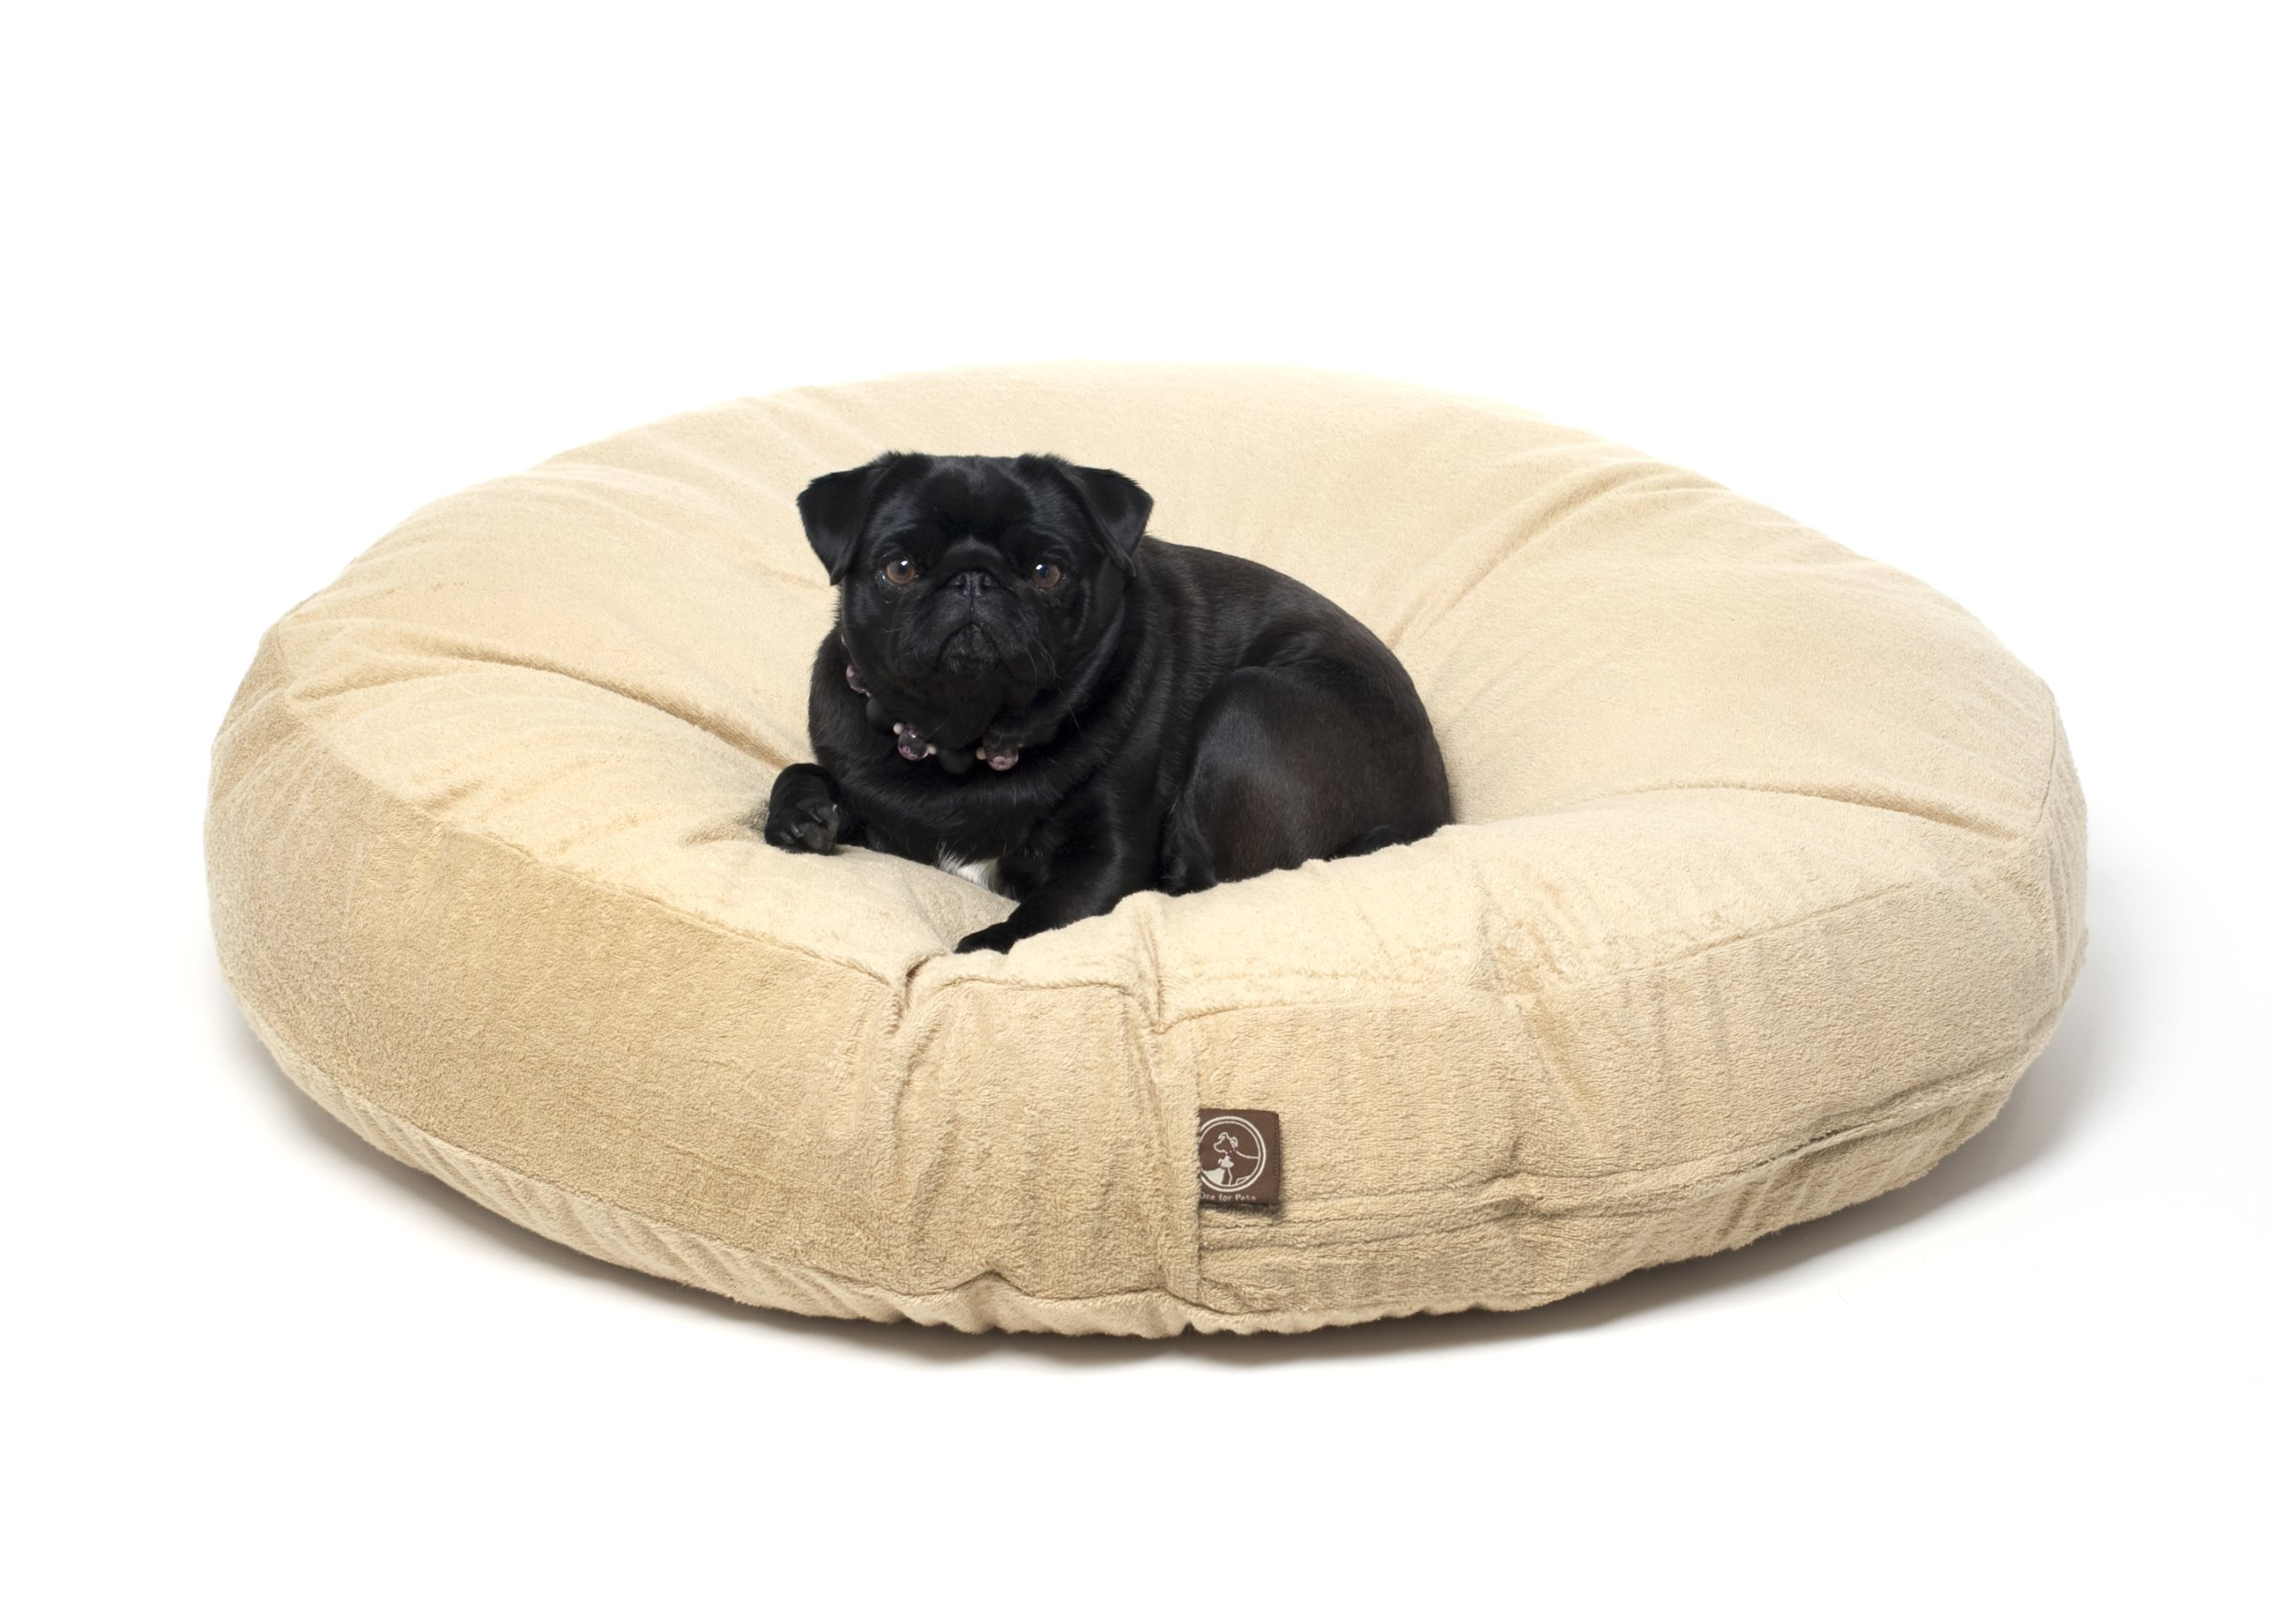 One For Pets Piddle-Proof Dog Bed Protector No More Accidents - Tan, 36'' Round x 5'' tall